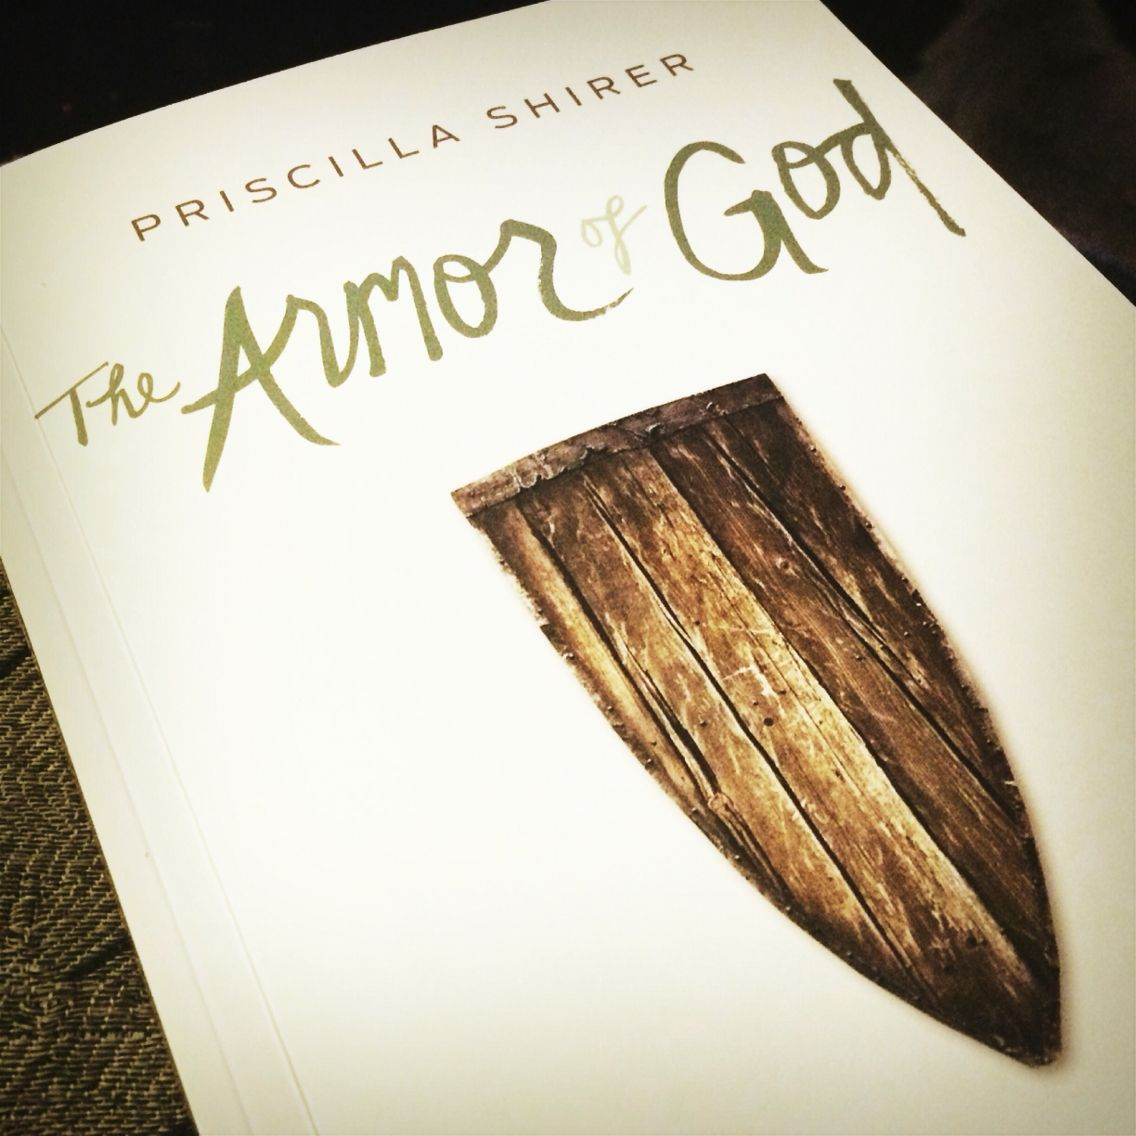 50+ Jesus in every book of the bible priscilla shirer ideas in 2021